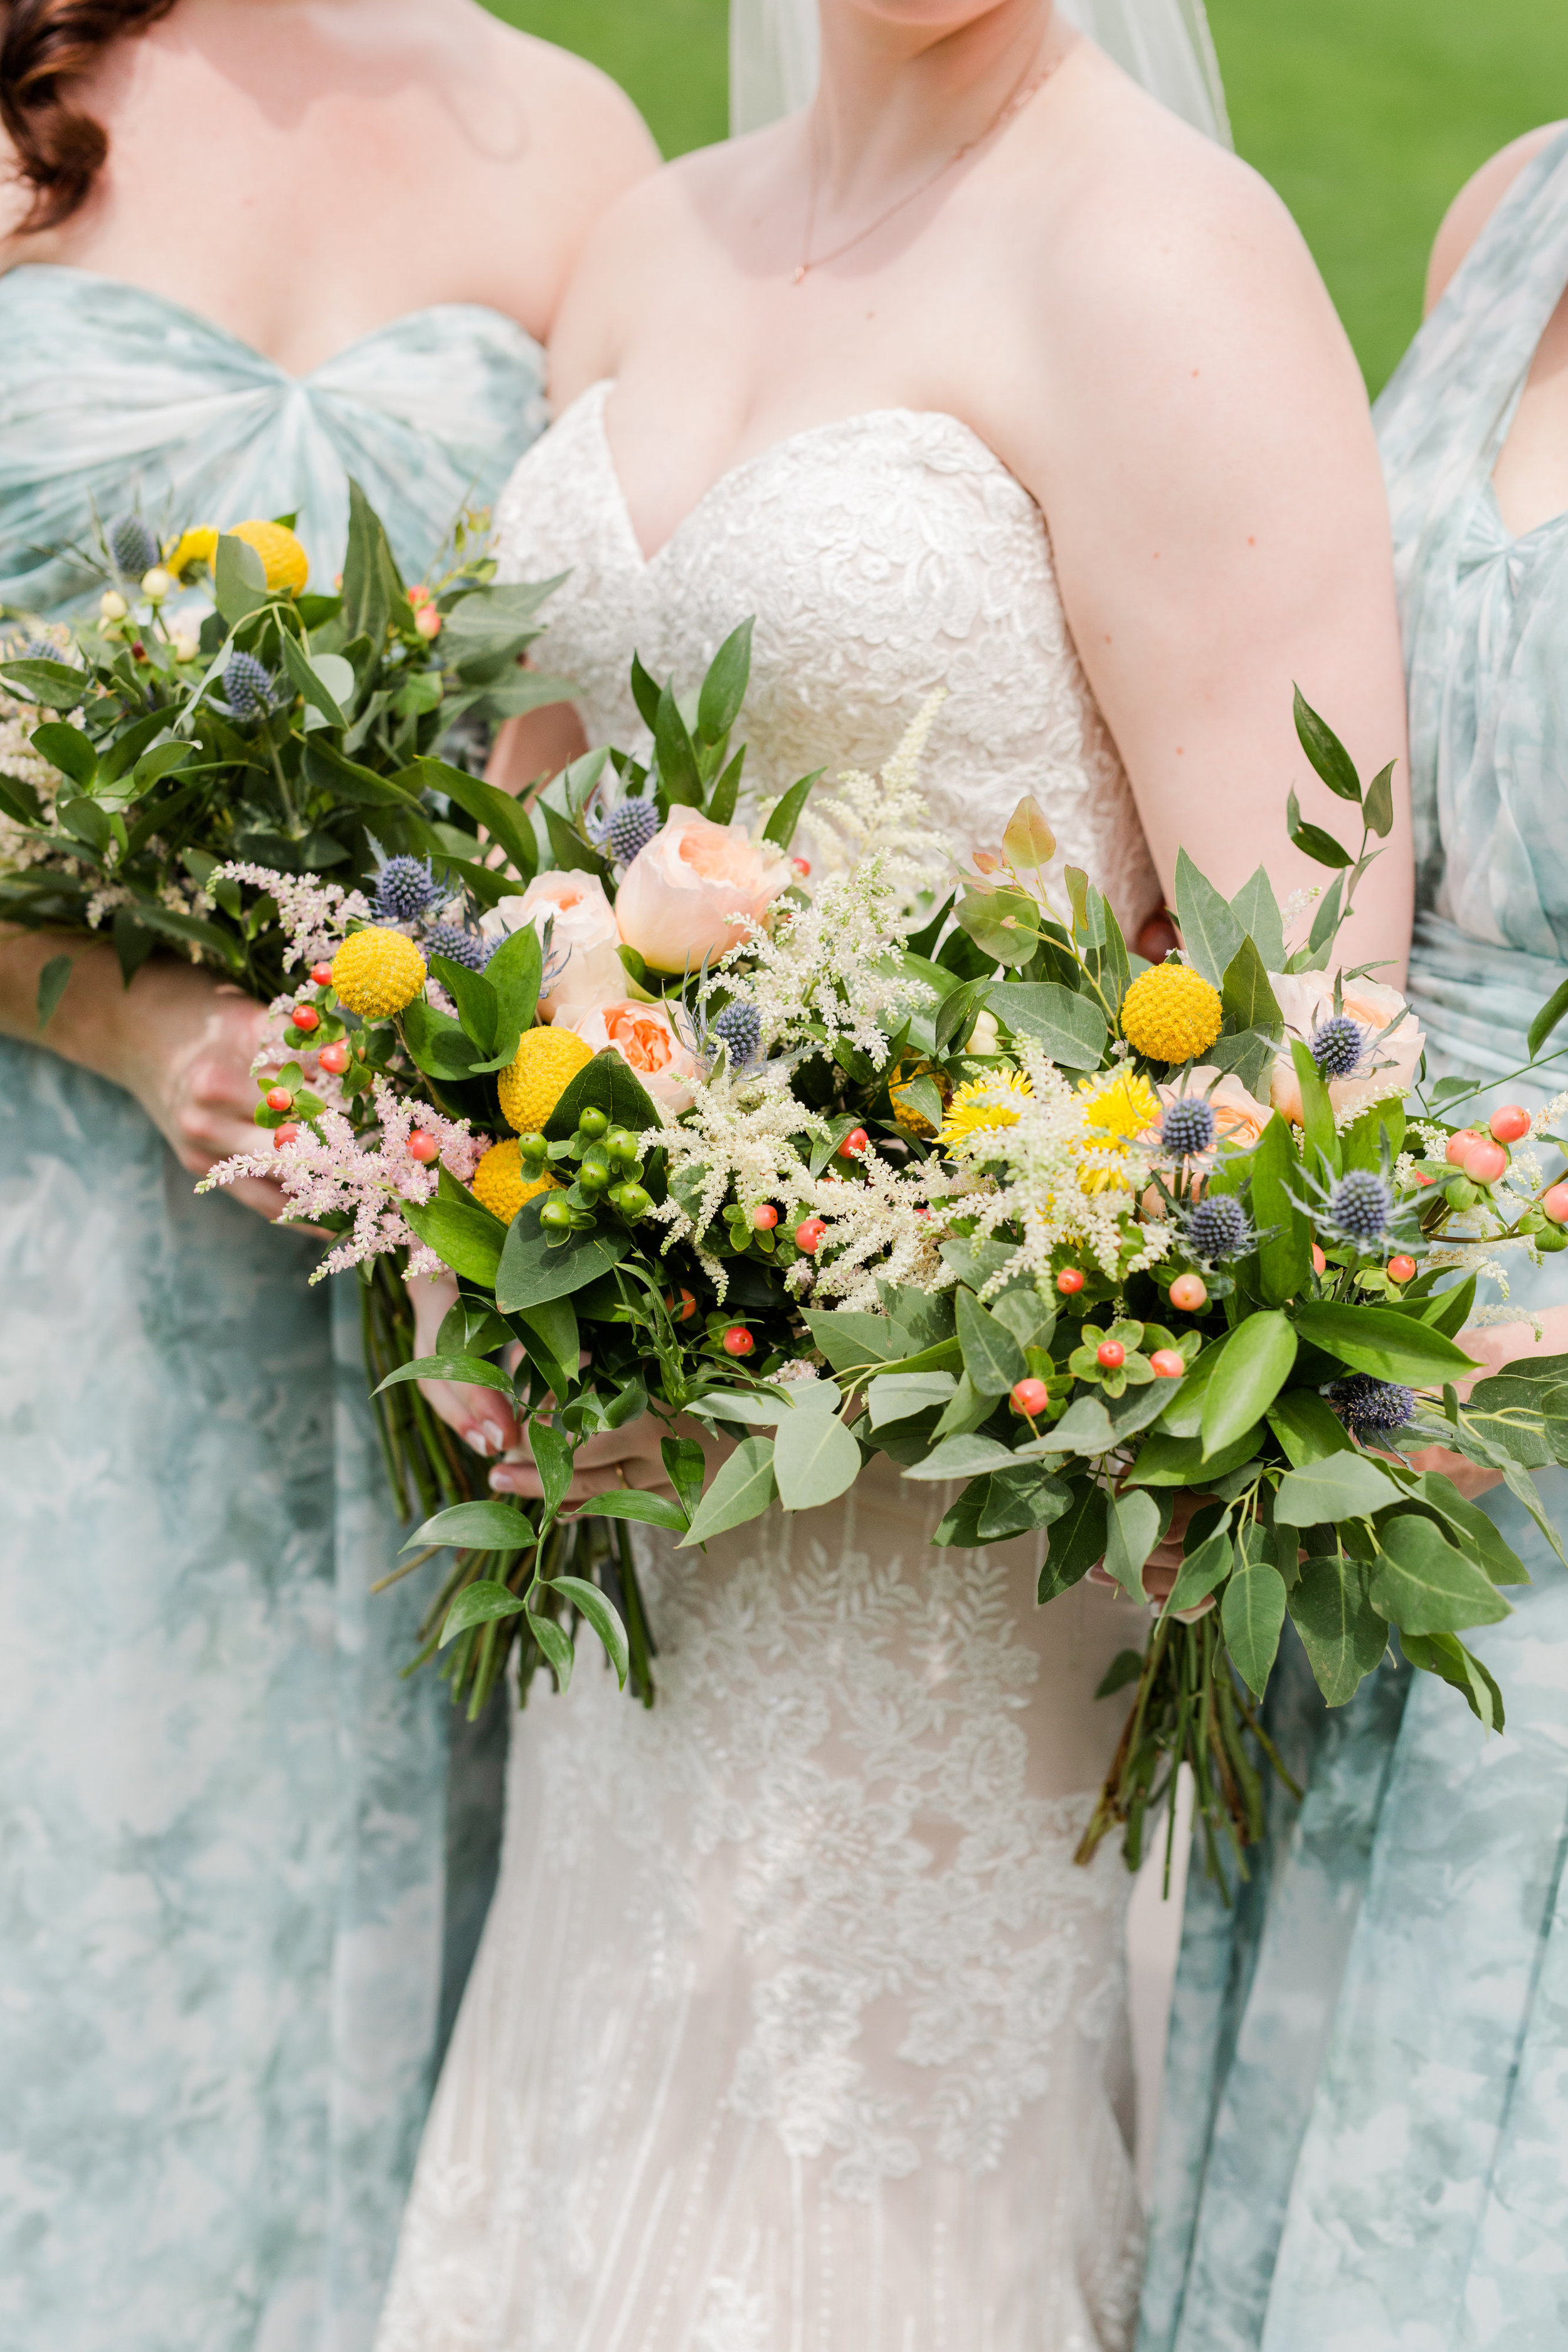 Jill + John :: Kristen Dryer :: Sixpence Events, bloom and buttercup bridesmaid bouquets with blue thistle and hypericum berries, pop of yellow (button mum)